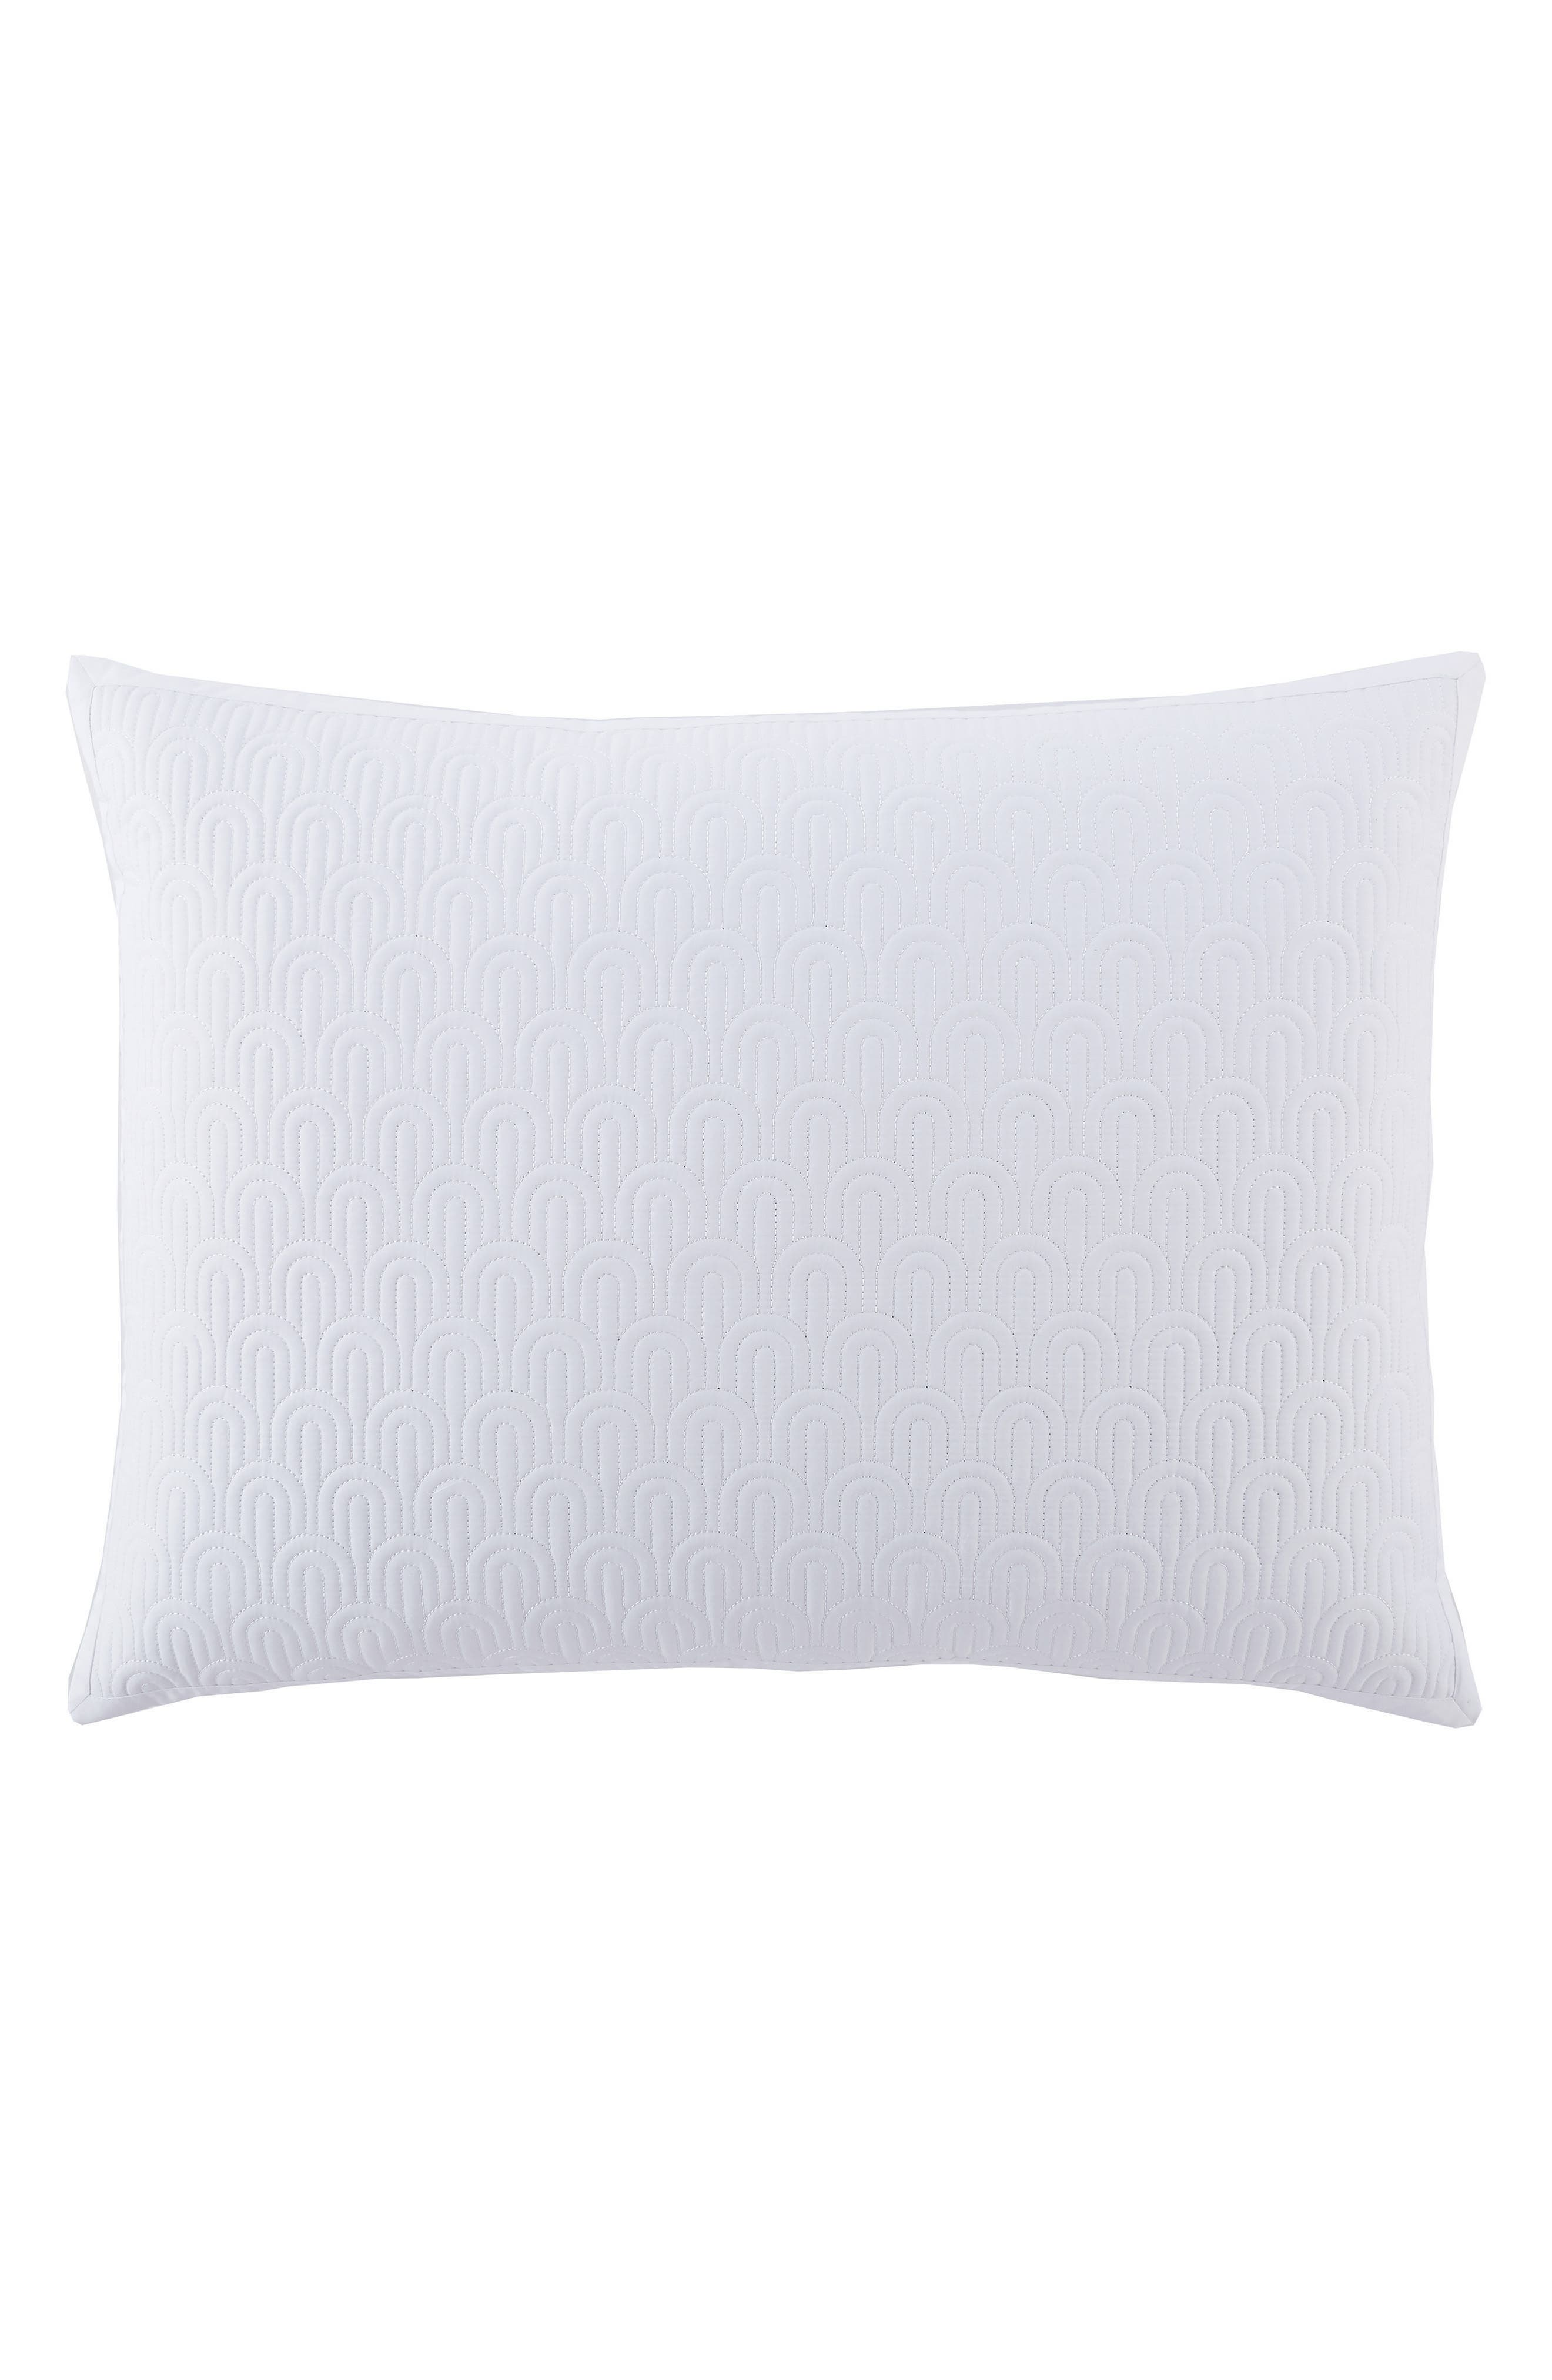 Quilted Sham,                             Main thumbnail 1, color,                             WHITE